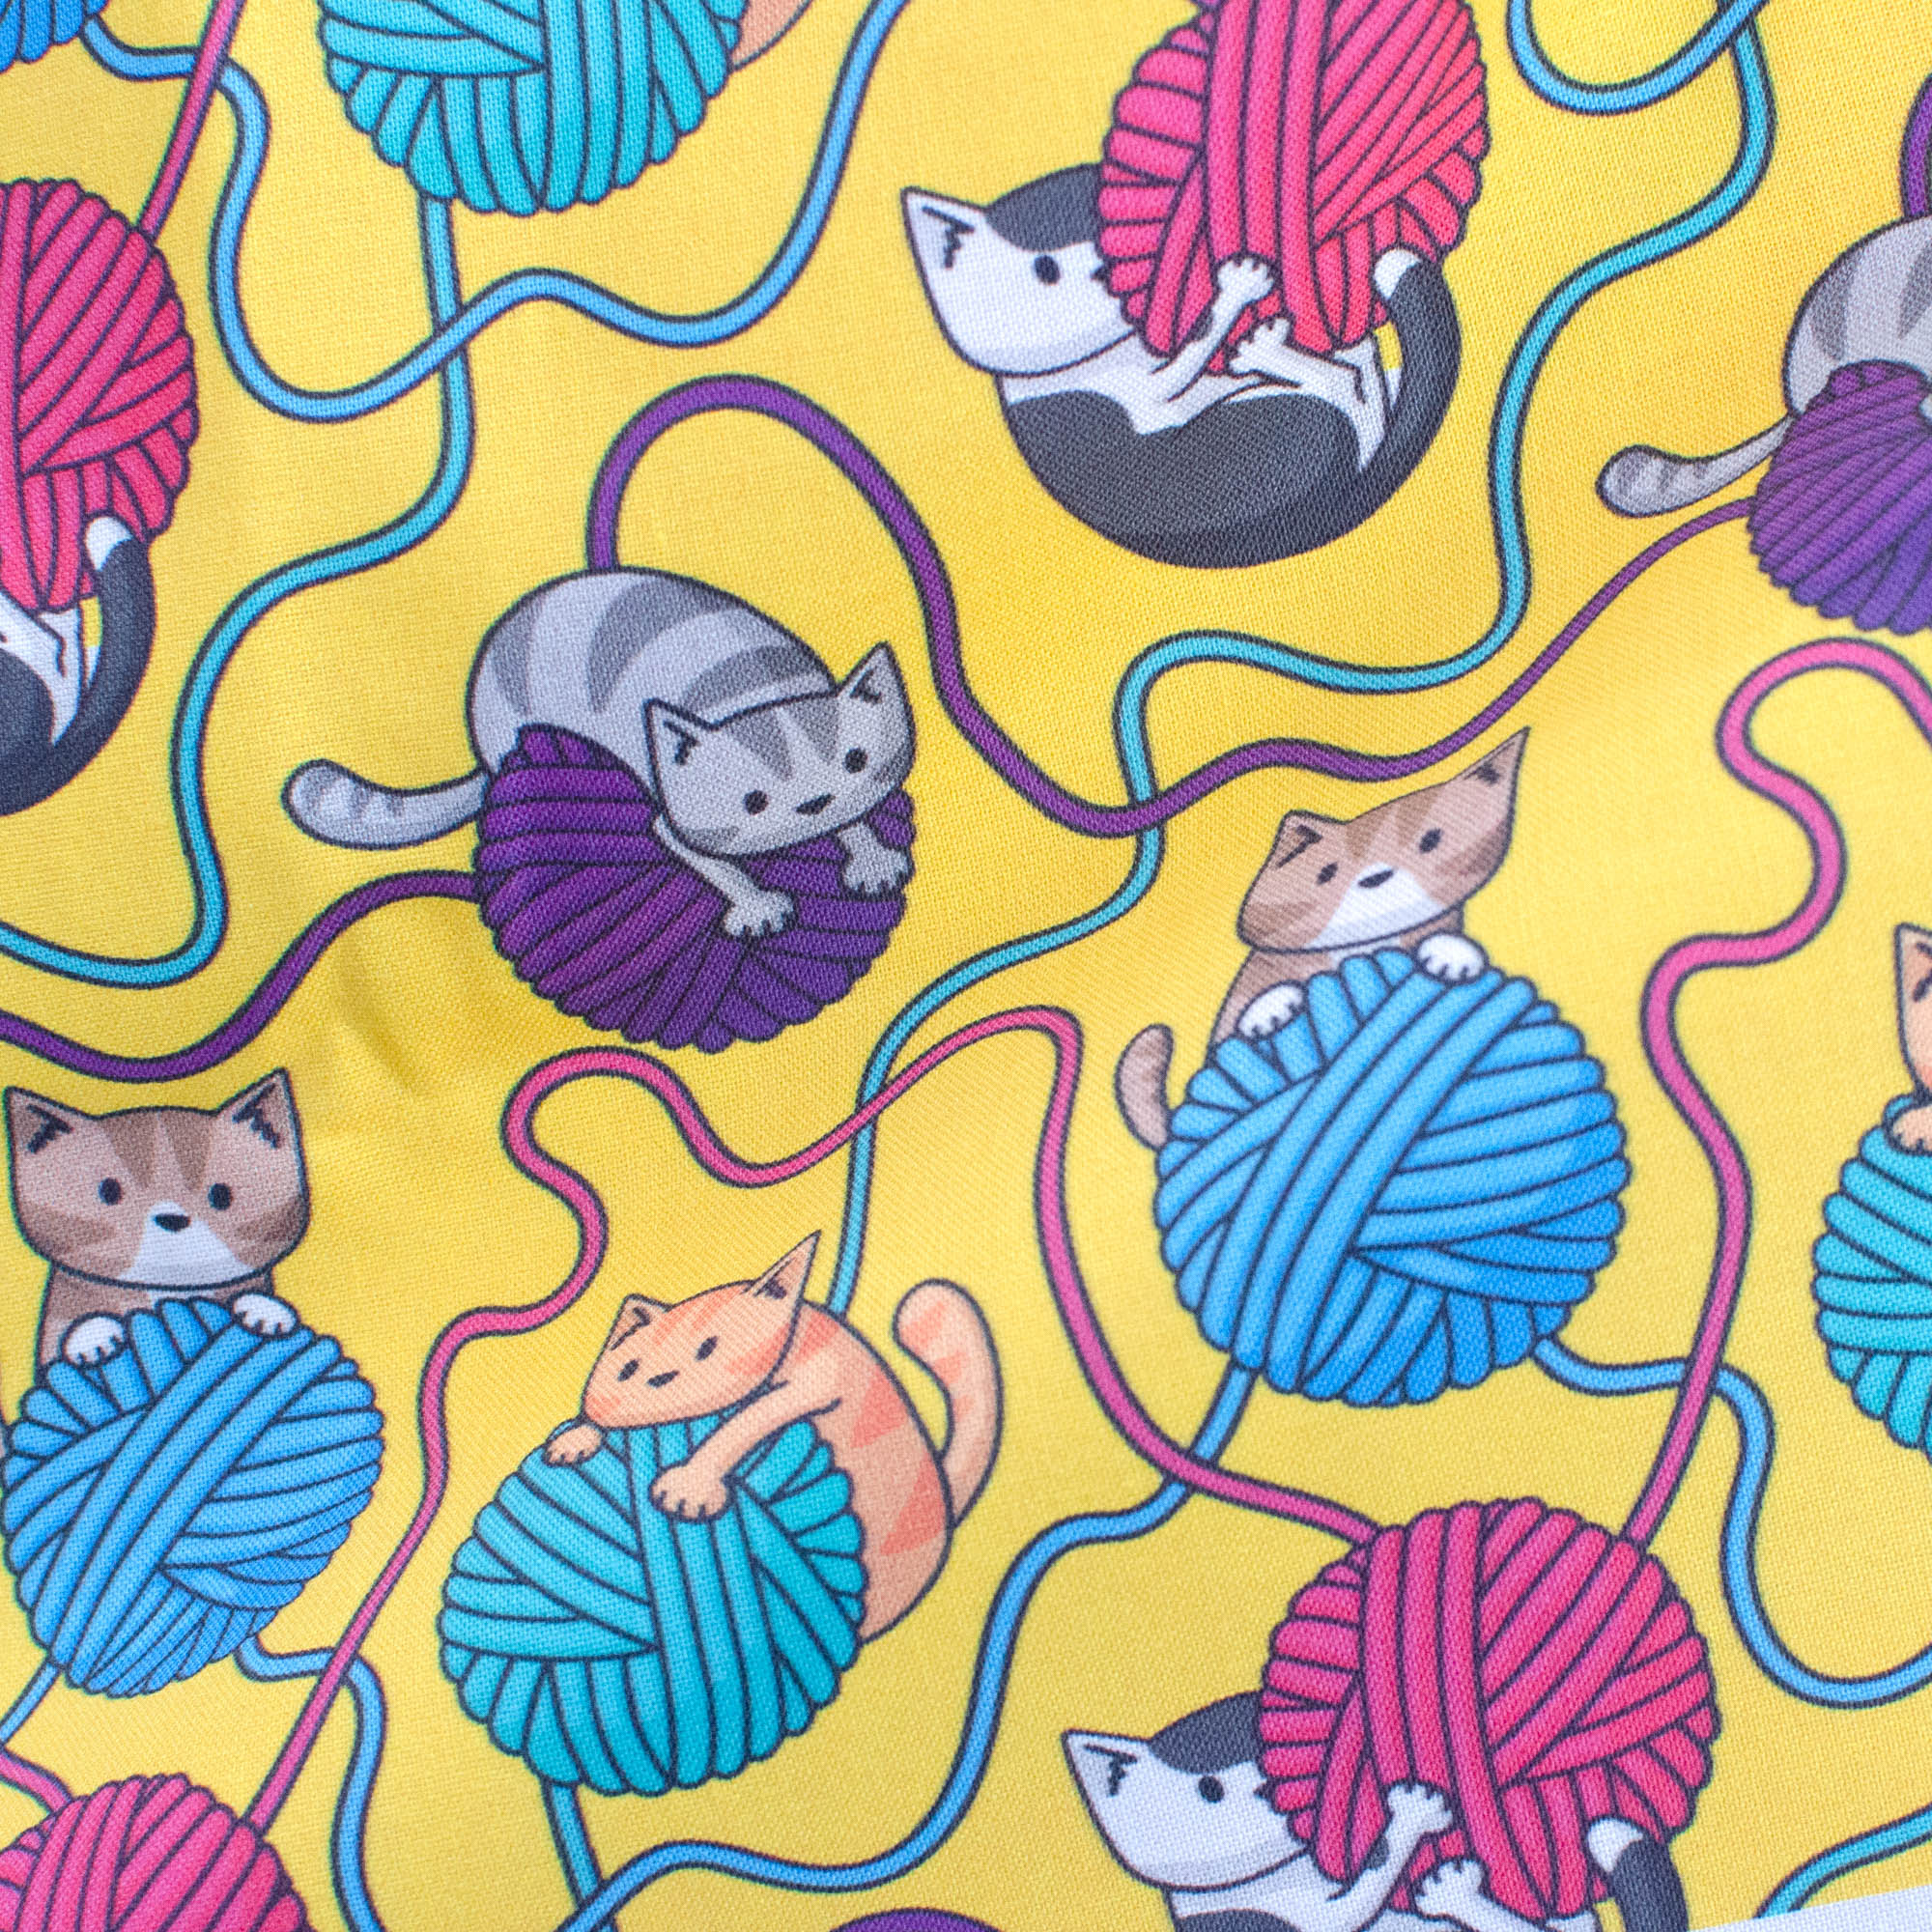 Doodlecats and yarn on yellow fabric